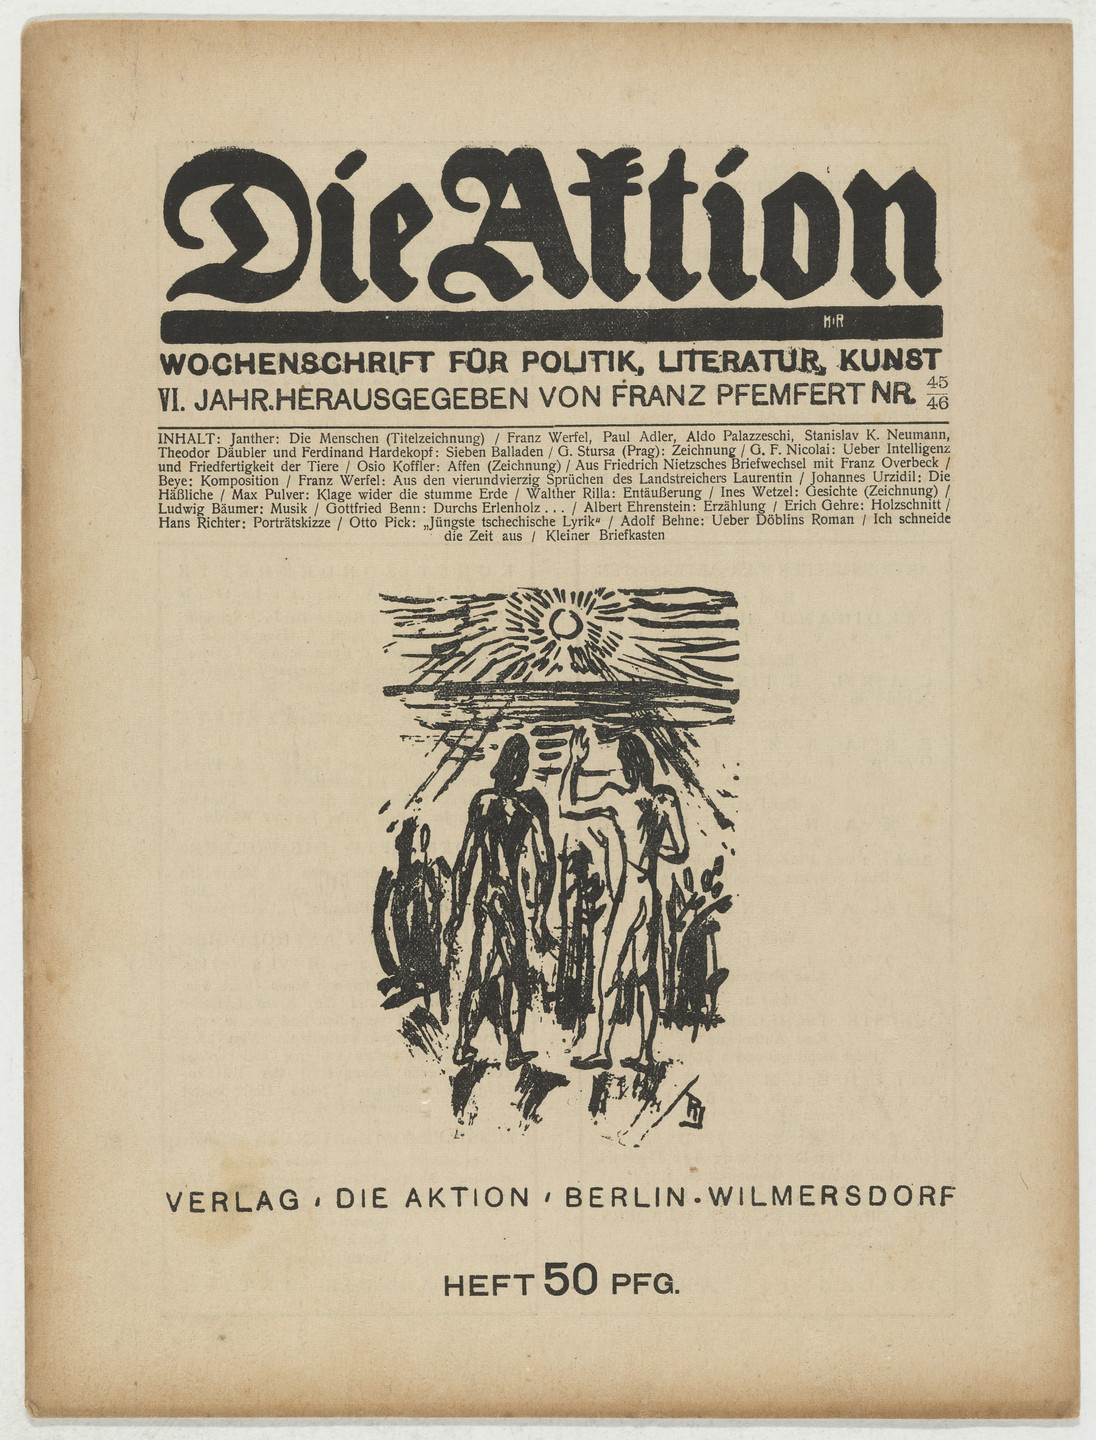 Erich Gehre. Die Aktion, vol. 6, no. 45/46. November 11, 1916